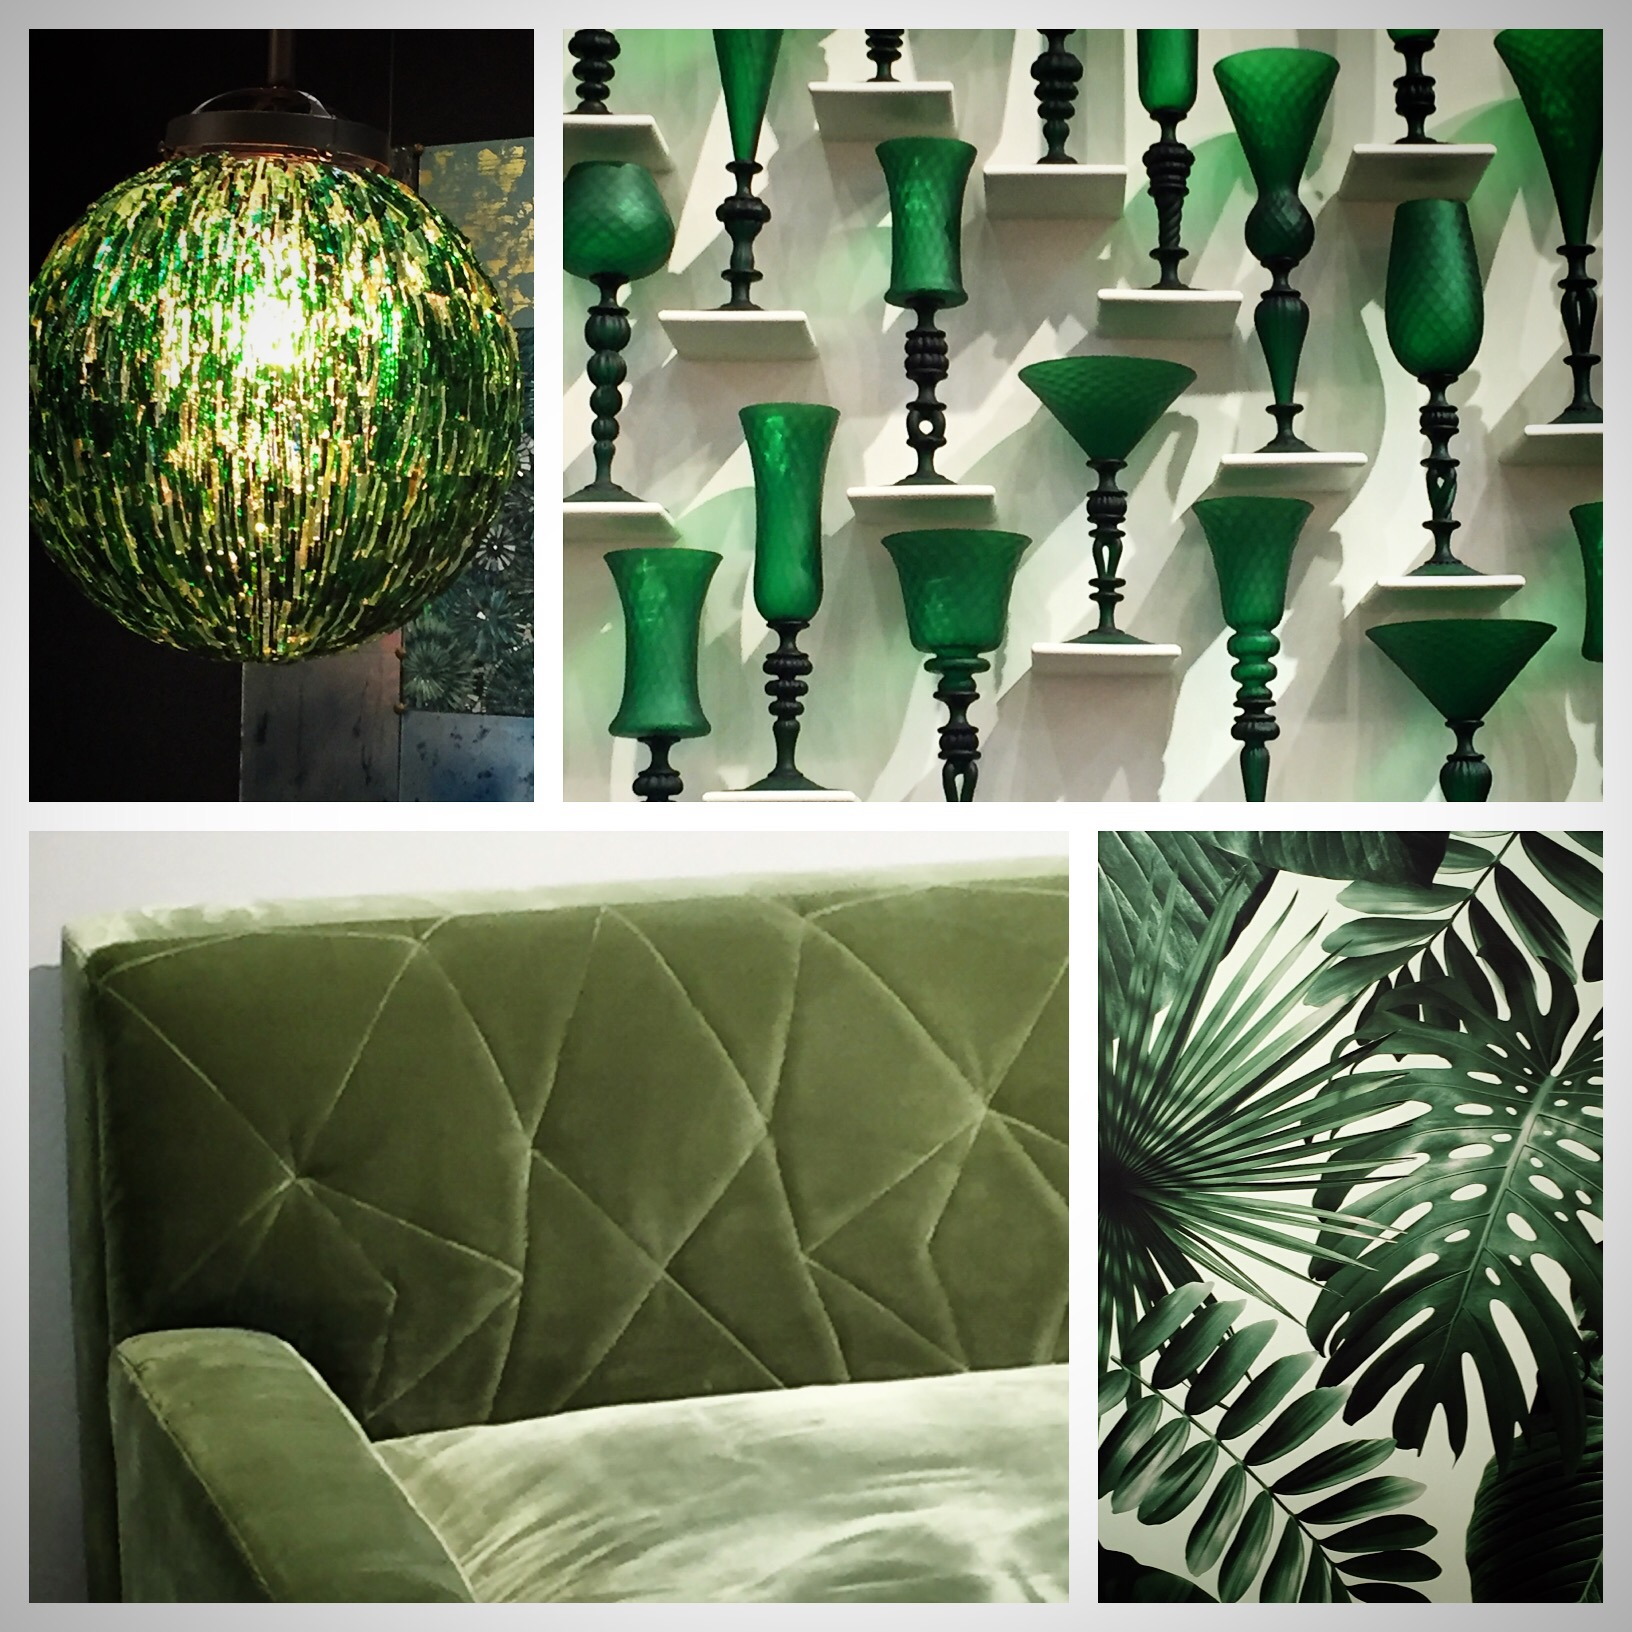 savvy style at architectural digest design show nyc color architectural digest design show in nyc at piers 92 94 concrete wood by jm lifestyles ercole pieper glass kgbl flavor papers